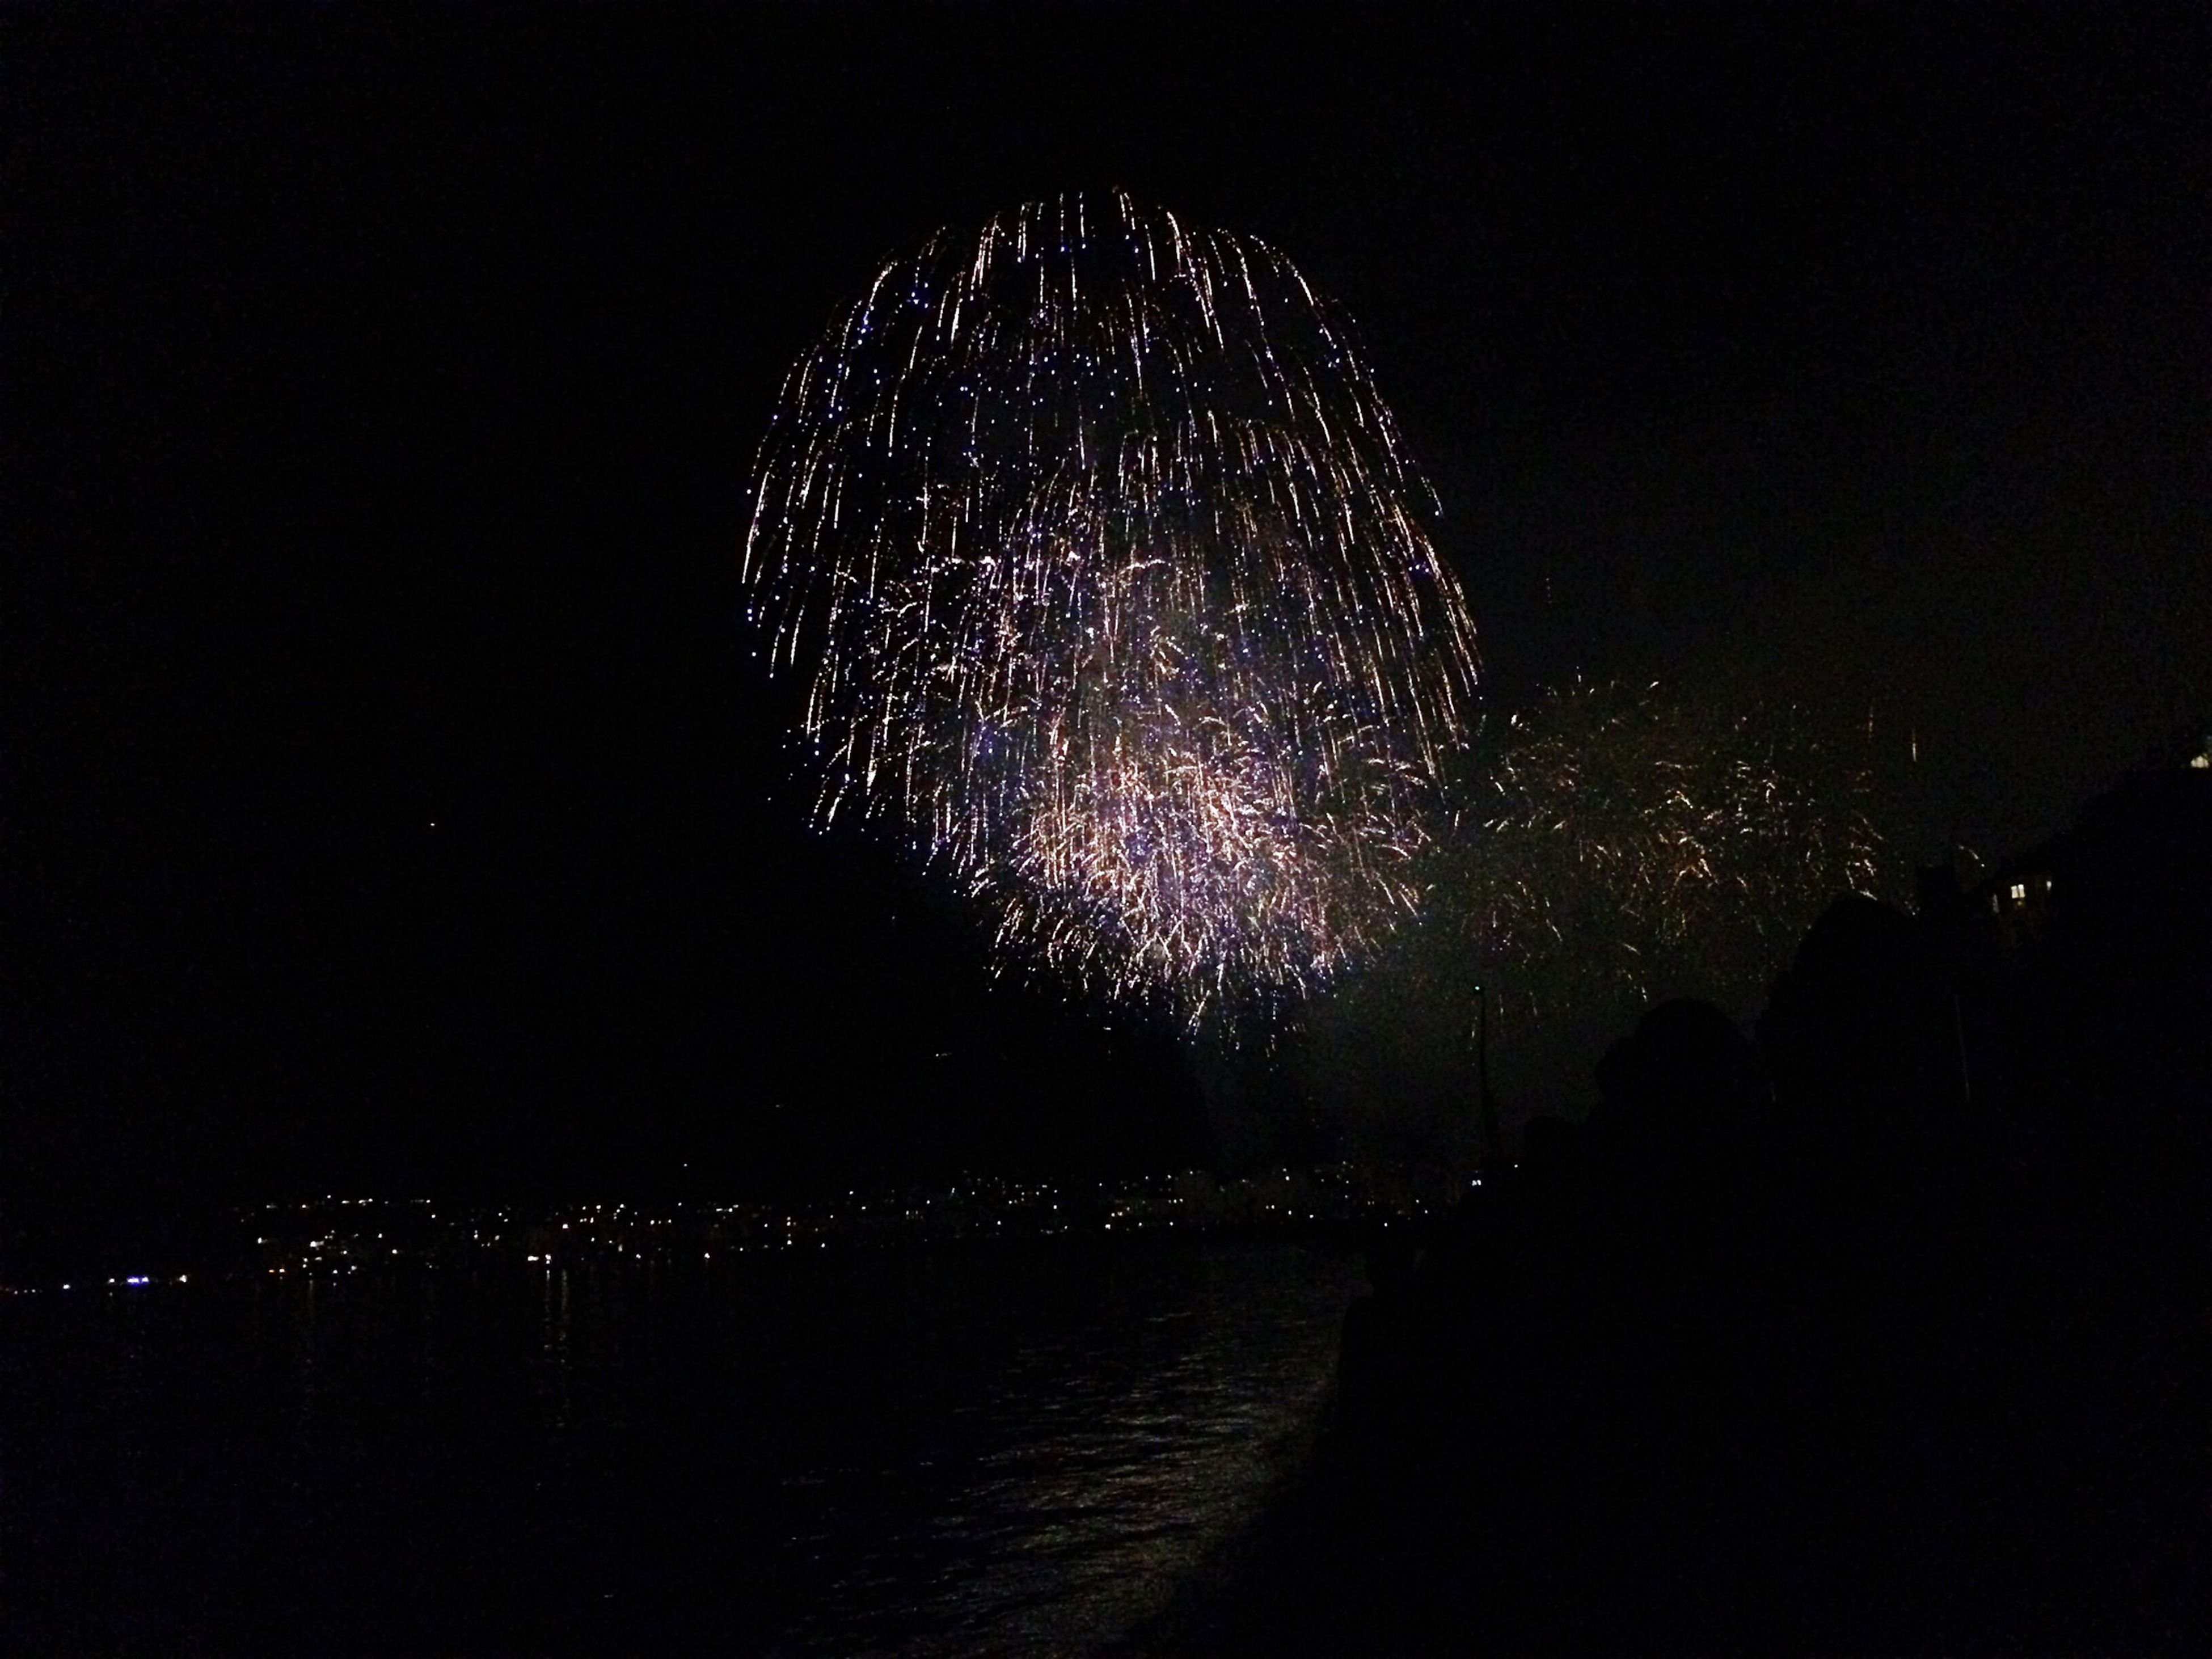 night, illuminated, firework display, arts culture and entertainment, celebration, long exposure, glowing, motion, exploding, firework - man made object, event, sparks, low angle view, sky, firework, city, blurred motion, dark, clear sky, lighting equipment